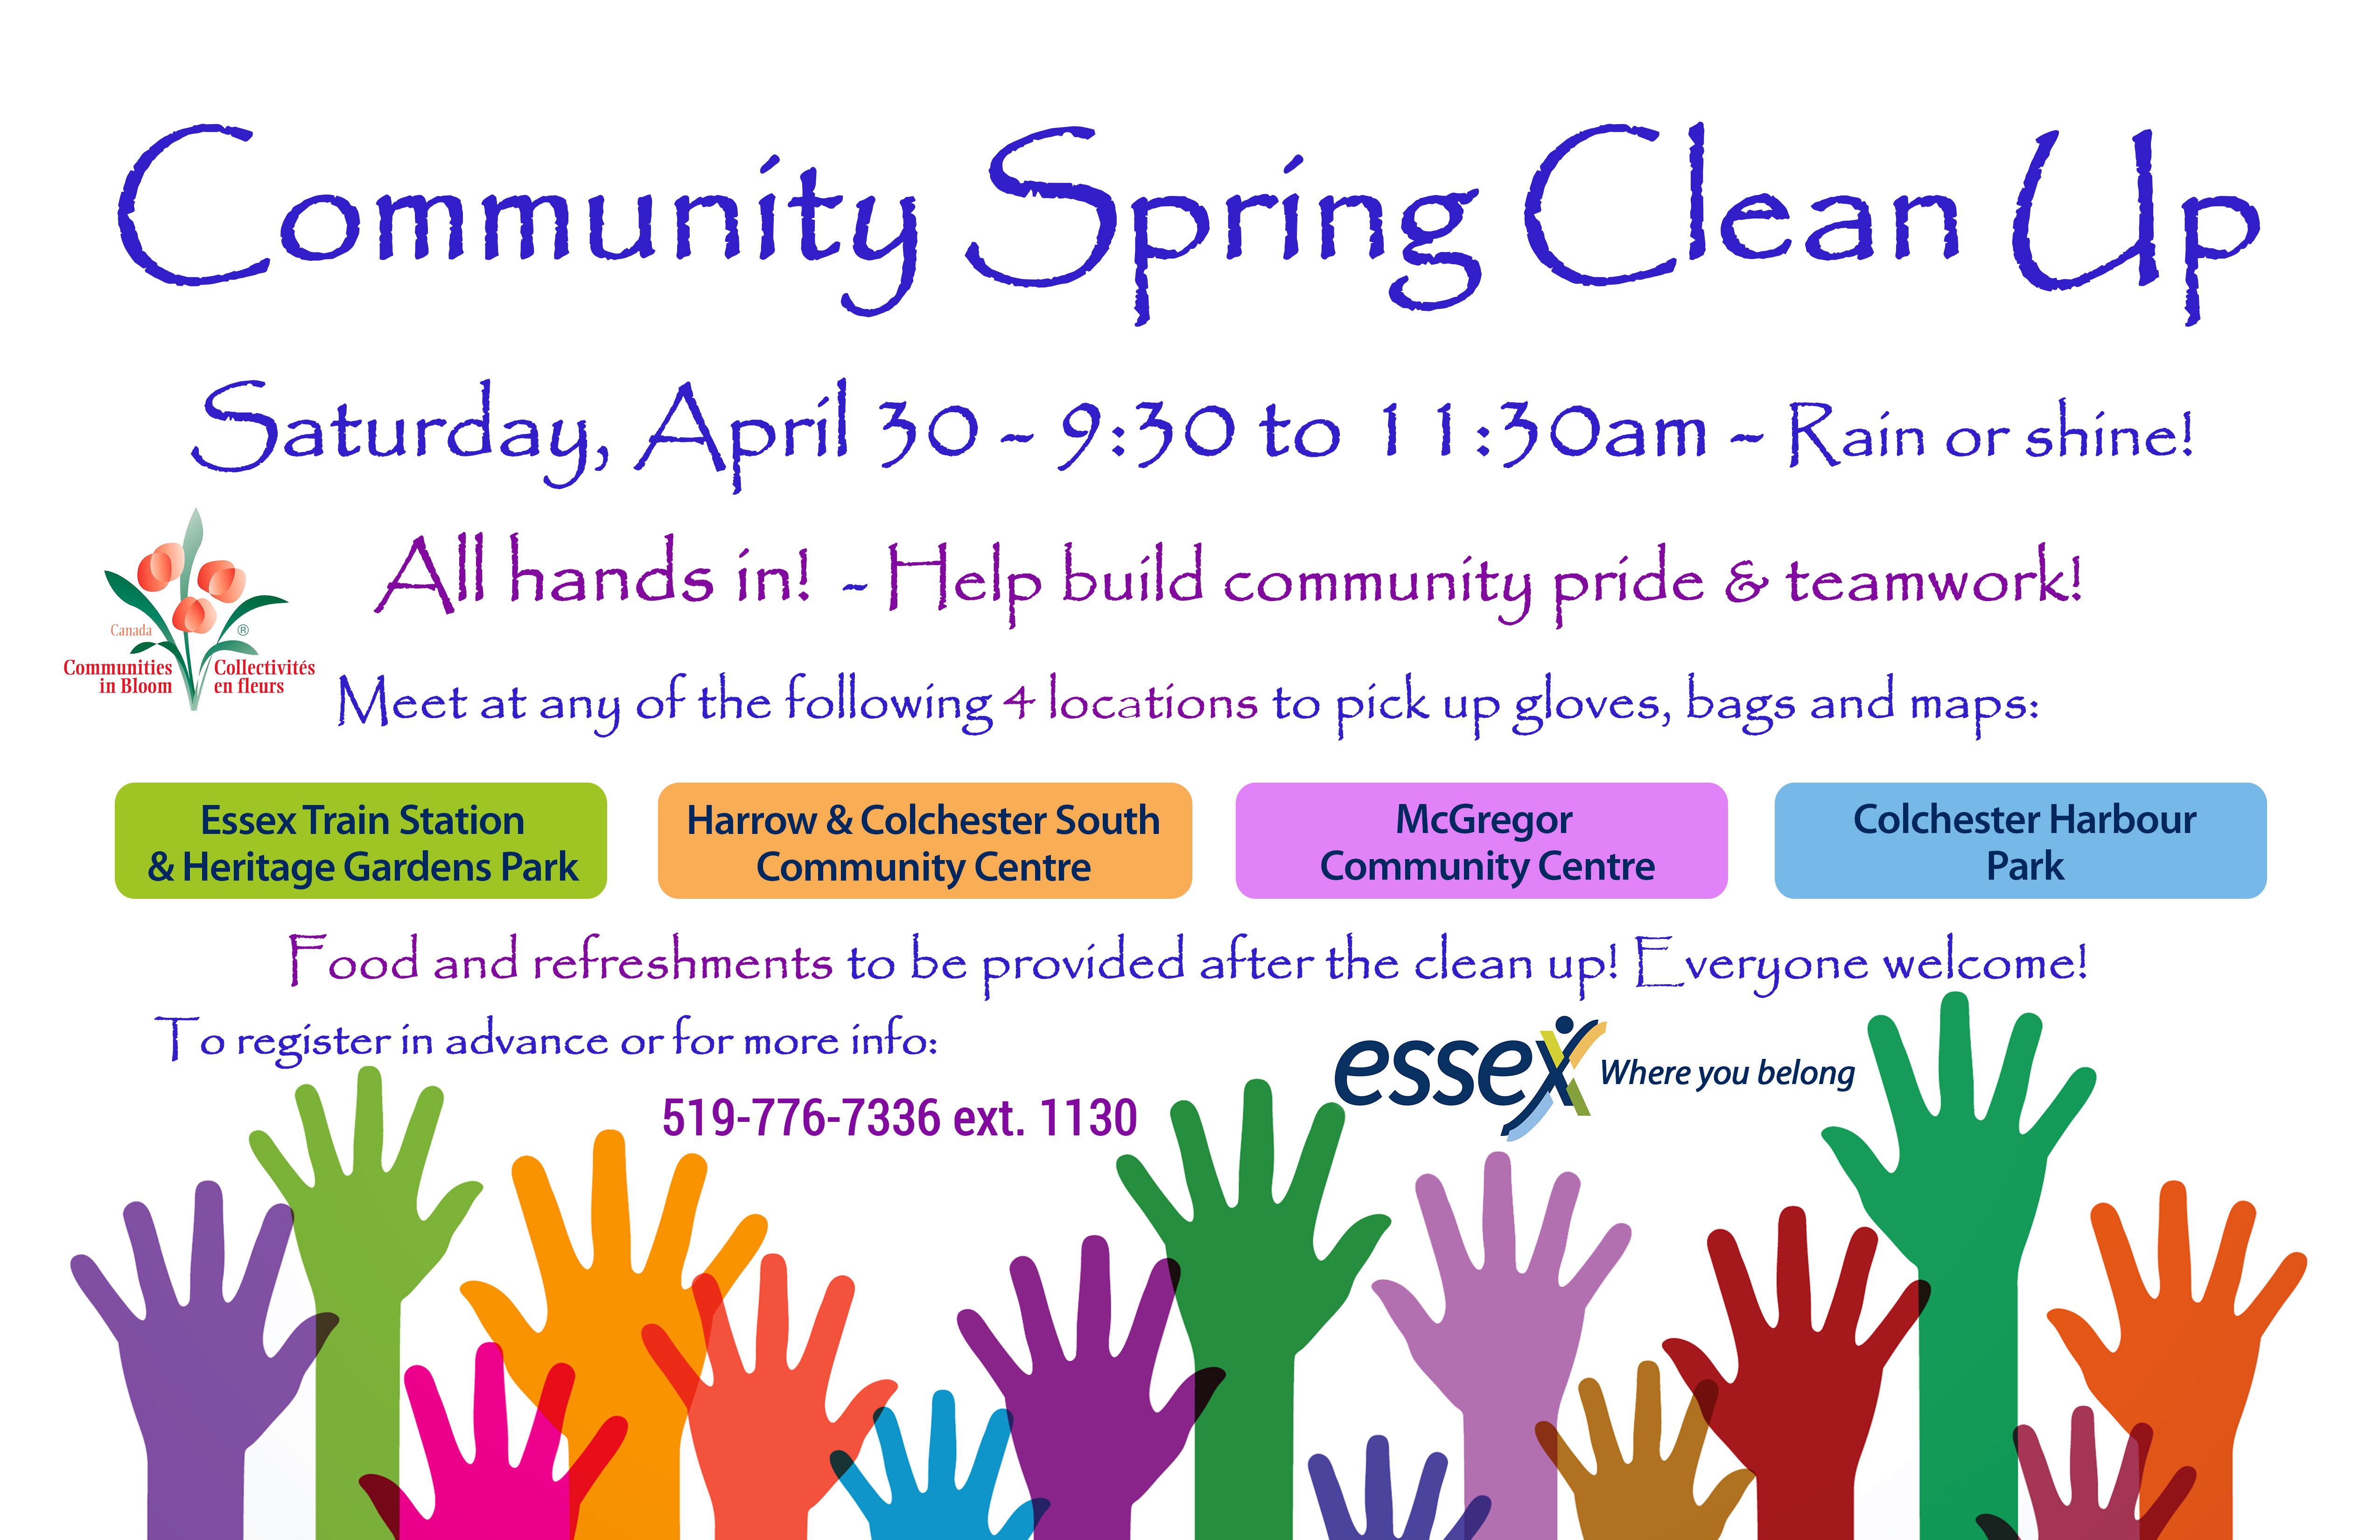 Spring Clean Up Poster